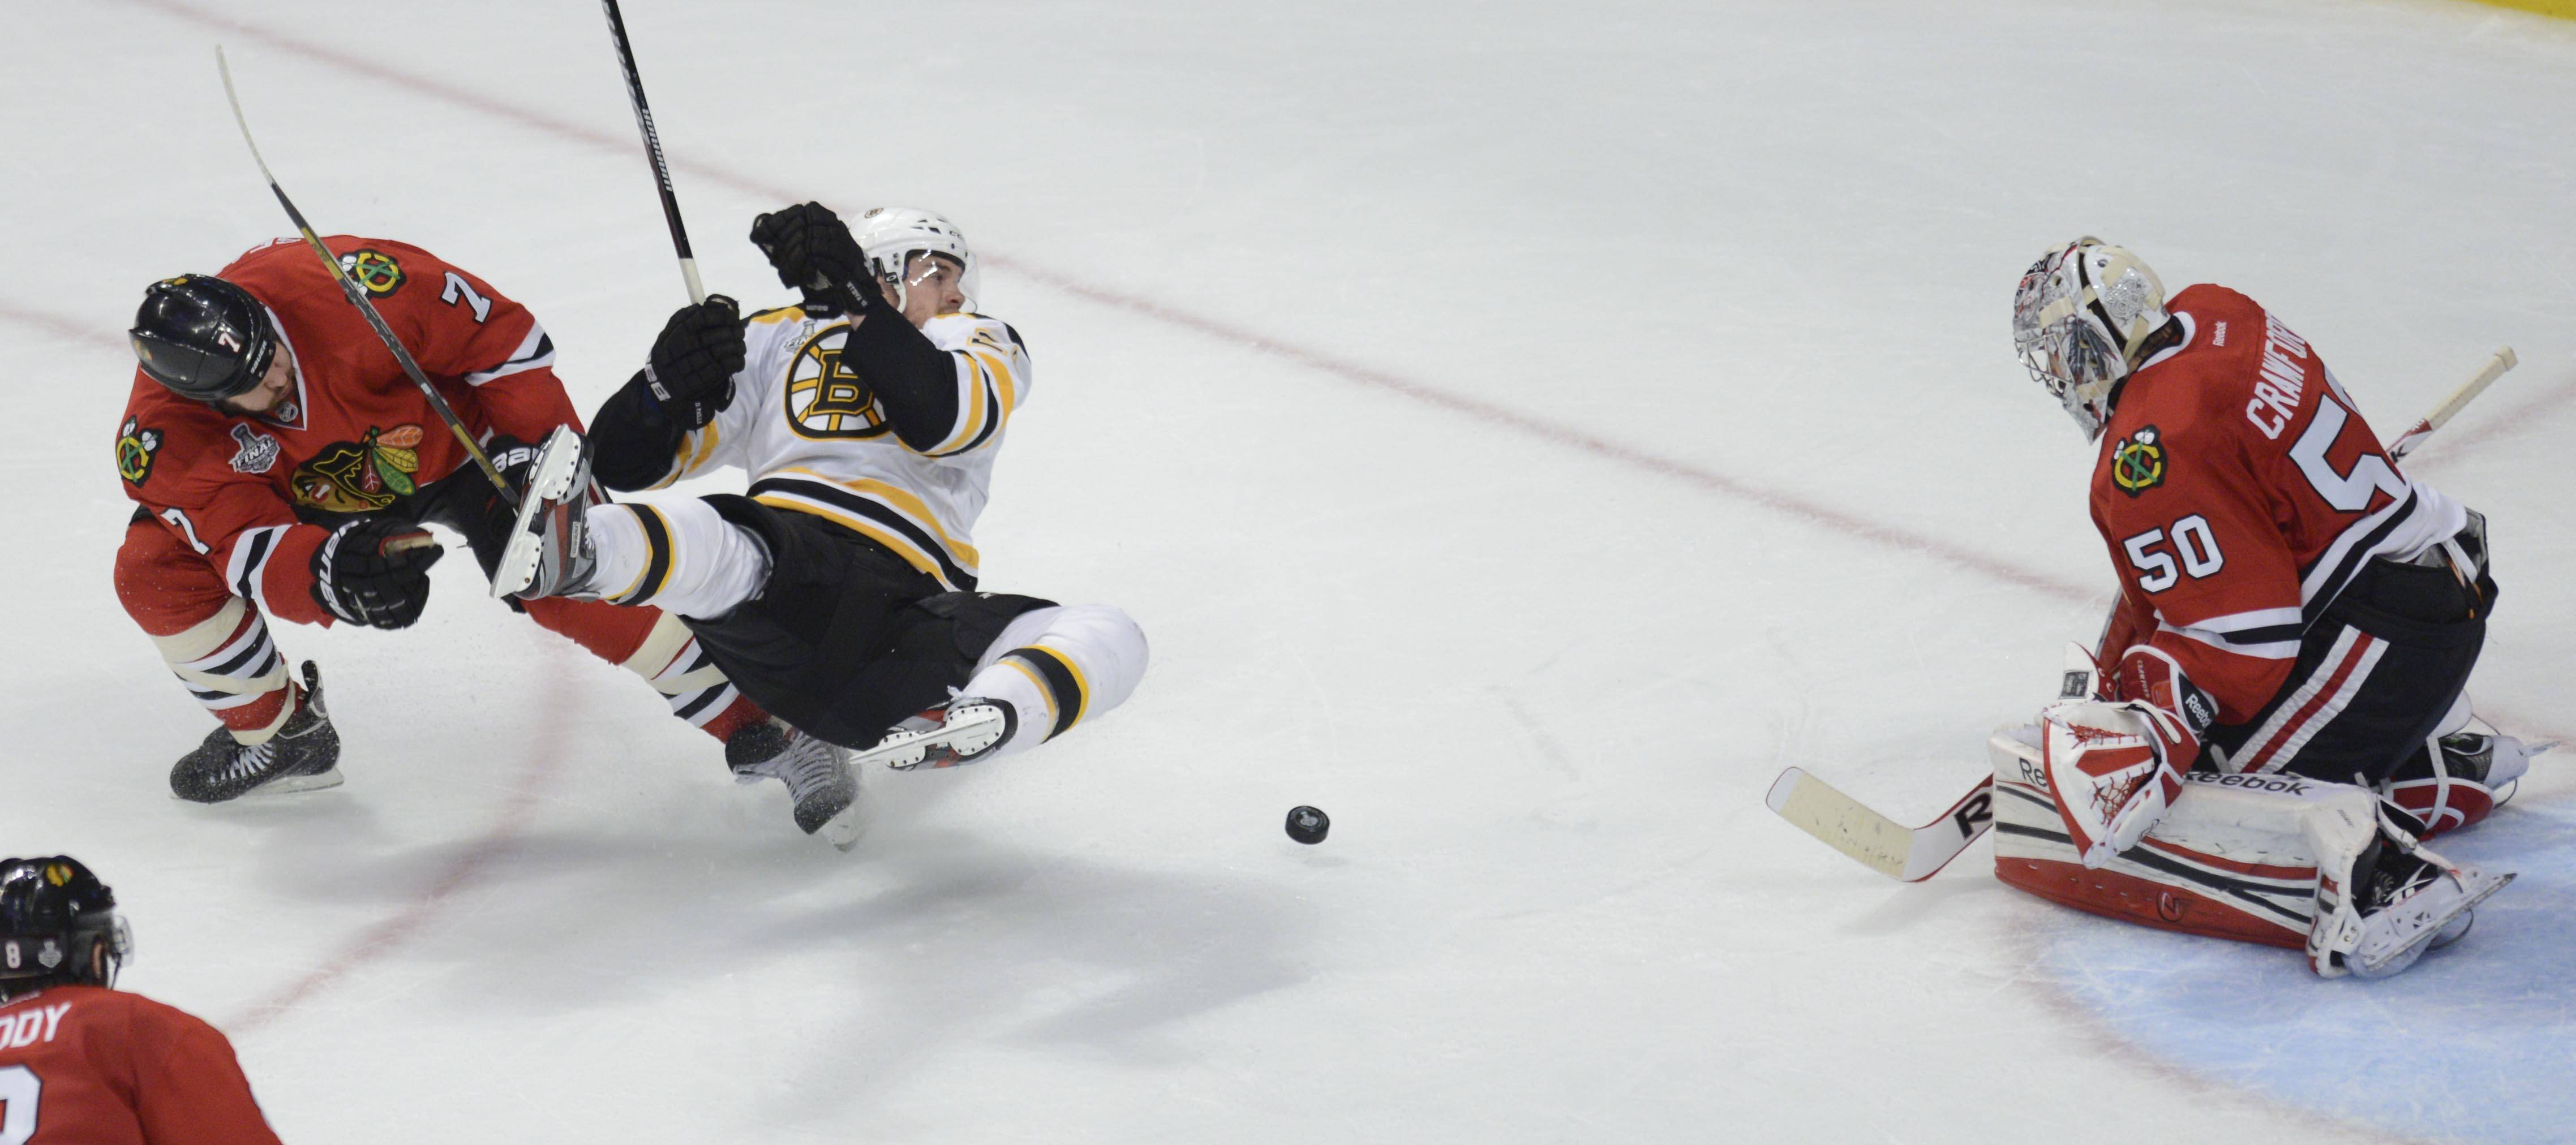 Boston Bruins left wing Daniel Paille flies through the air after colliding with Chicago Blackhawks defenseman Brent Seabrook as he charged the net in the third period during Game 1 of the Stanley Cup Finals Wednesday at the Untied Center in Chicago. He slid into Chicago Blackhawks goalie Corey Crawford but not penalty was called.